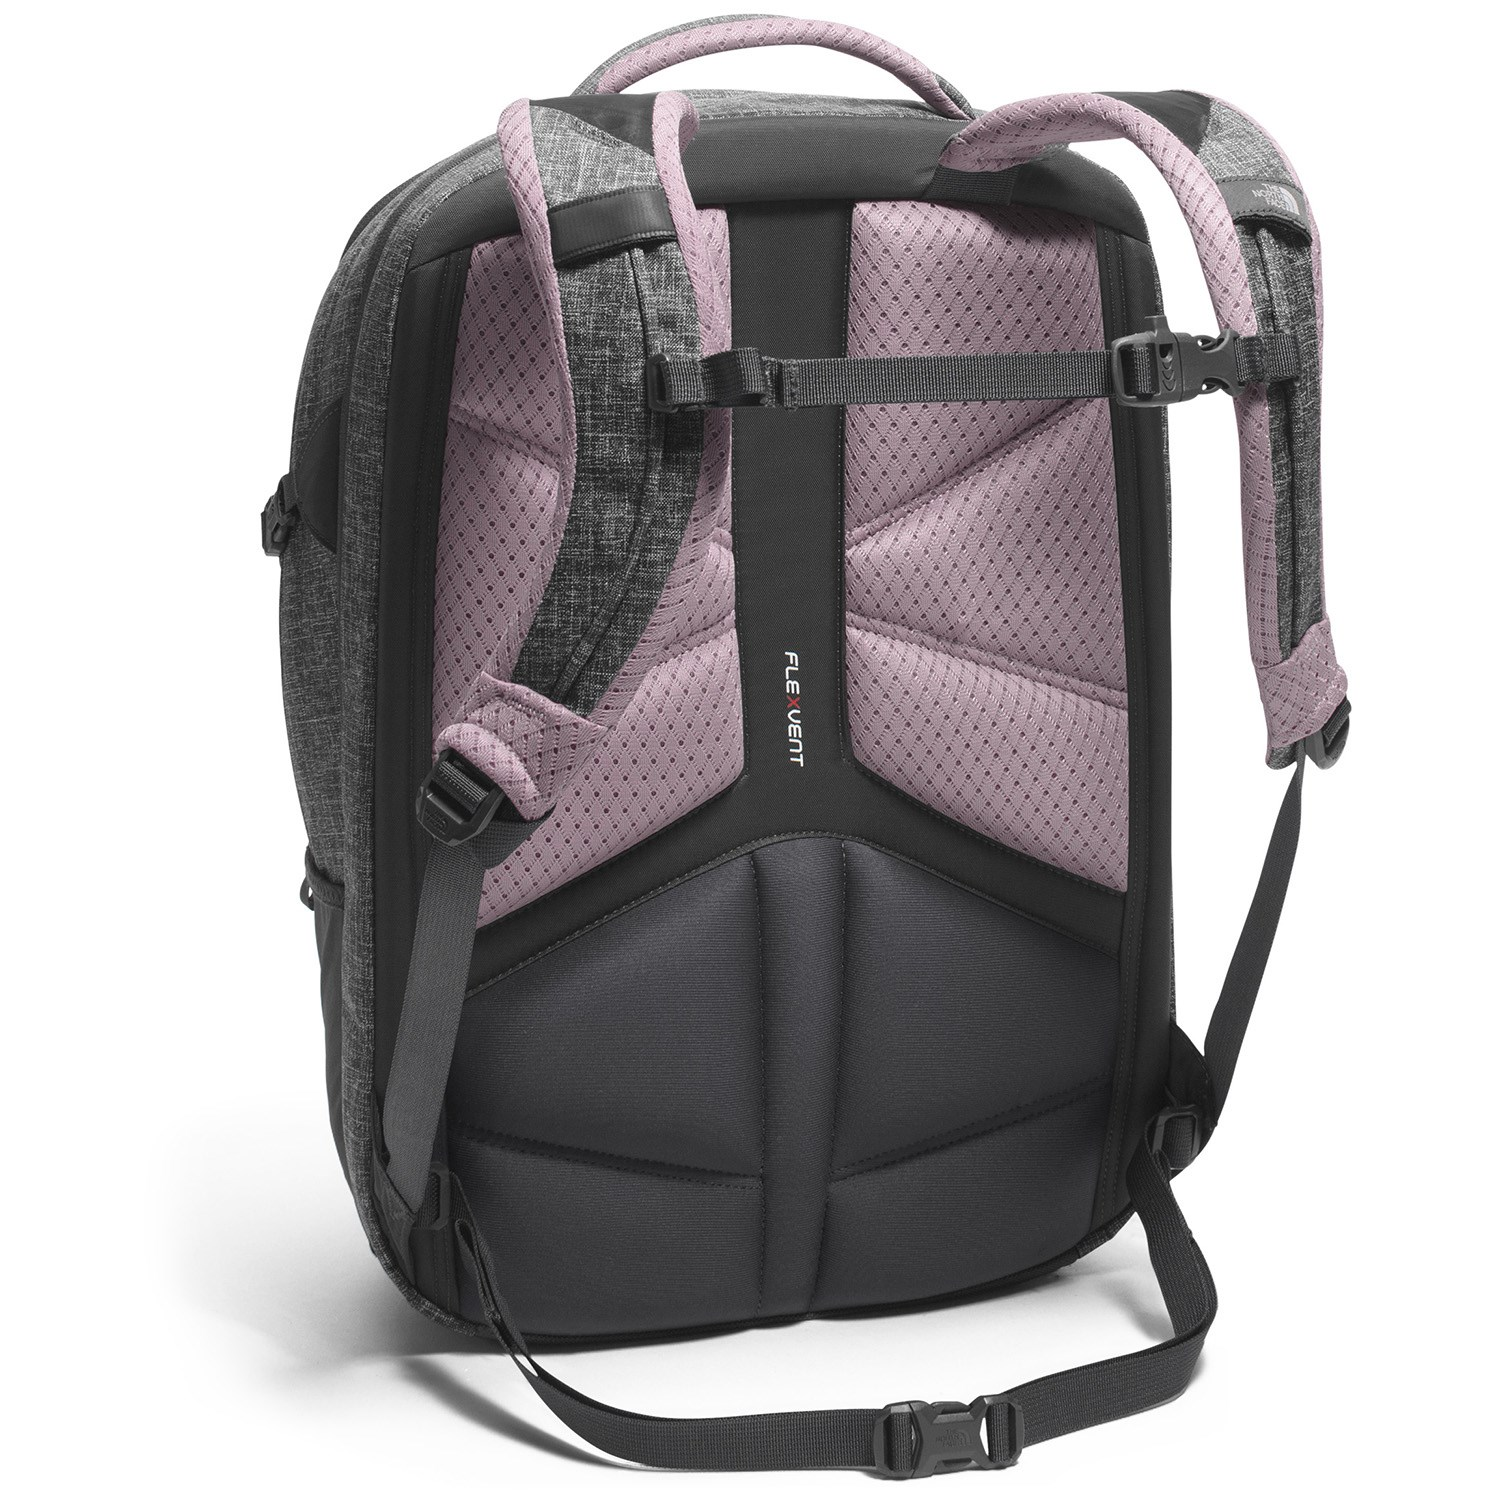 a5231610d The North Face Surge Backpack - Women's